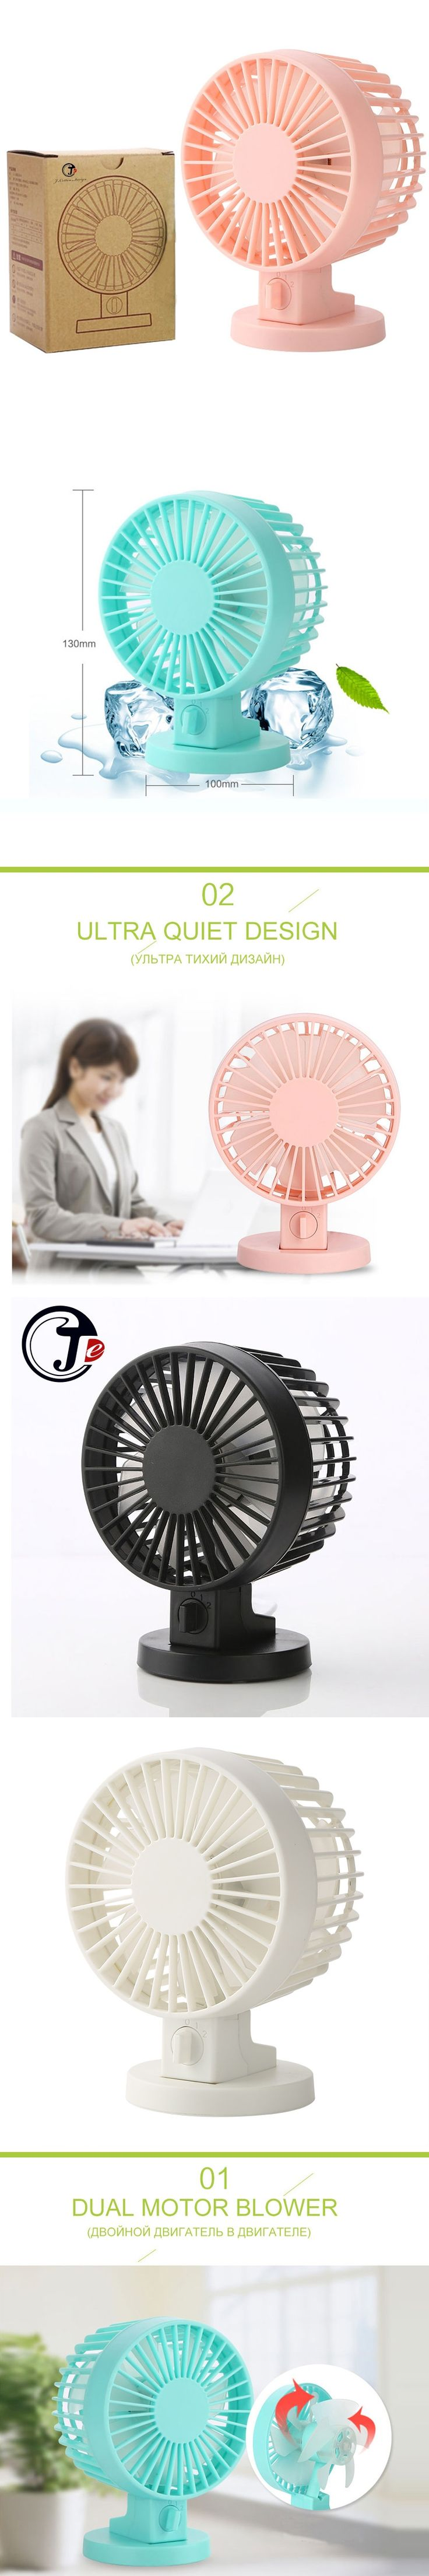 Best 25+ Portable fan ideas on Pinterest | Electric fan, Vintage ...